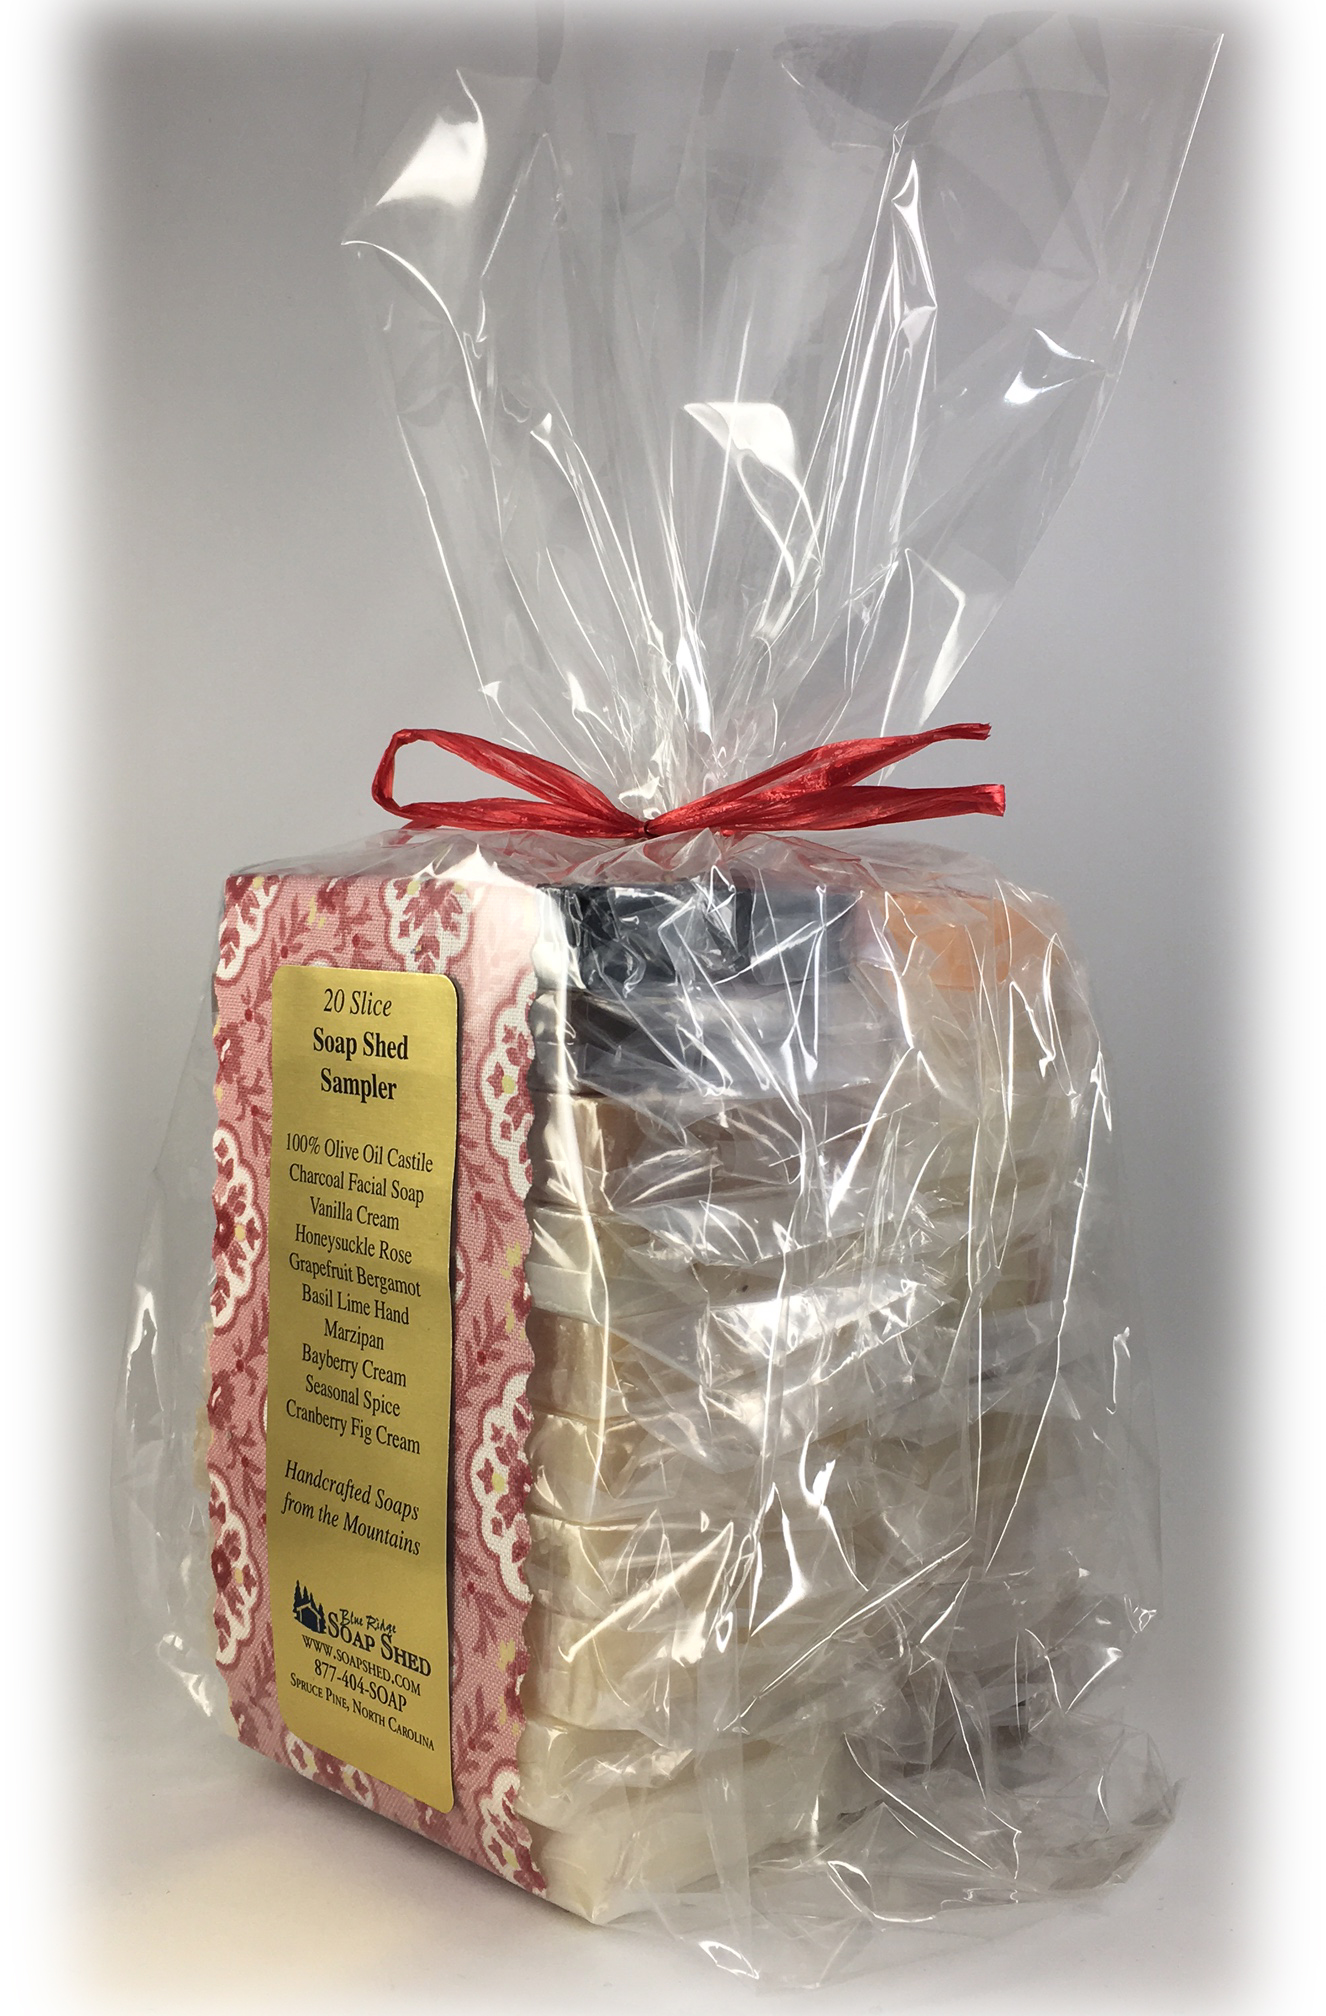 The Soap Shed Sampler - 20 Slices for $49.95